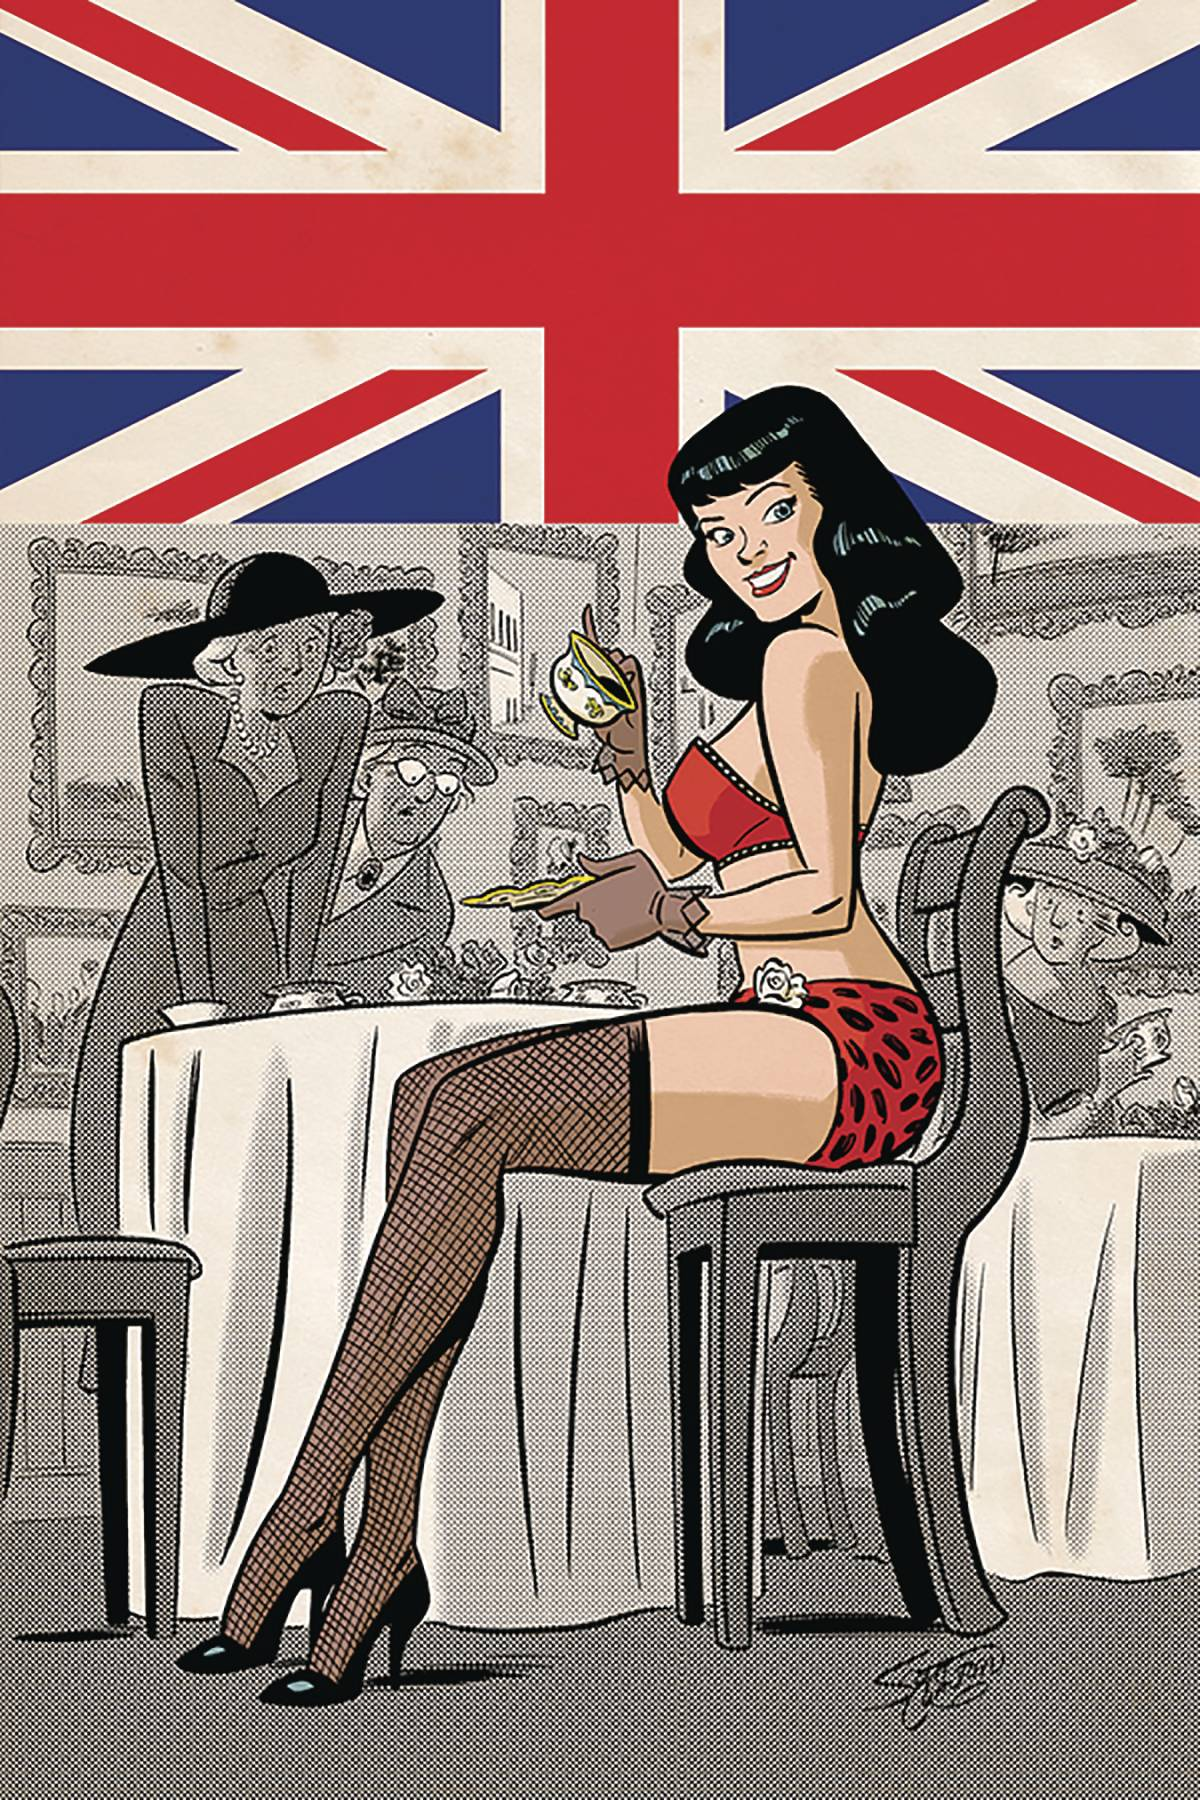 BETTIE PAGE 4 30 COPY CHANTLER VIRGIN INCV.jpg